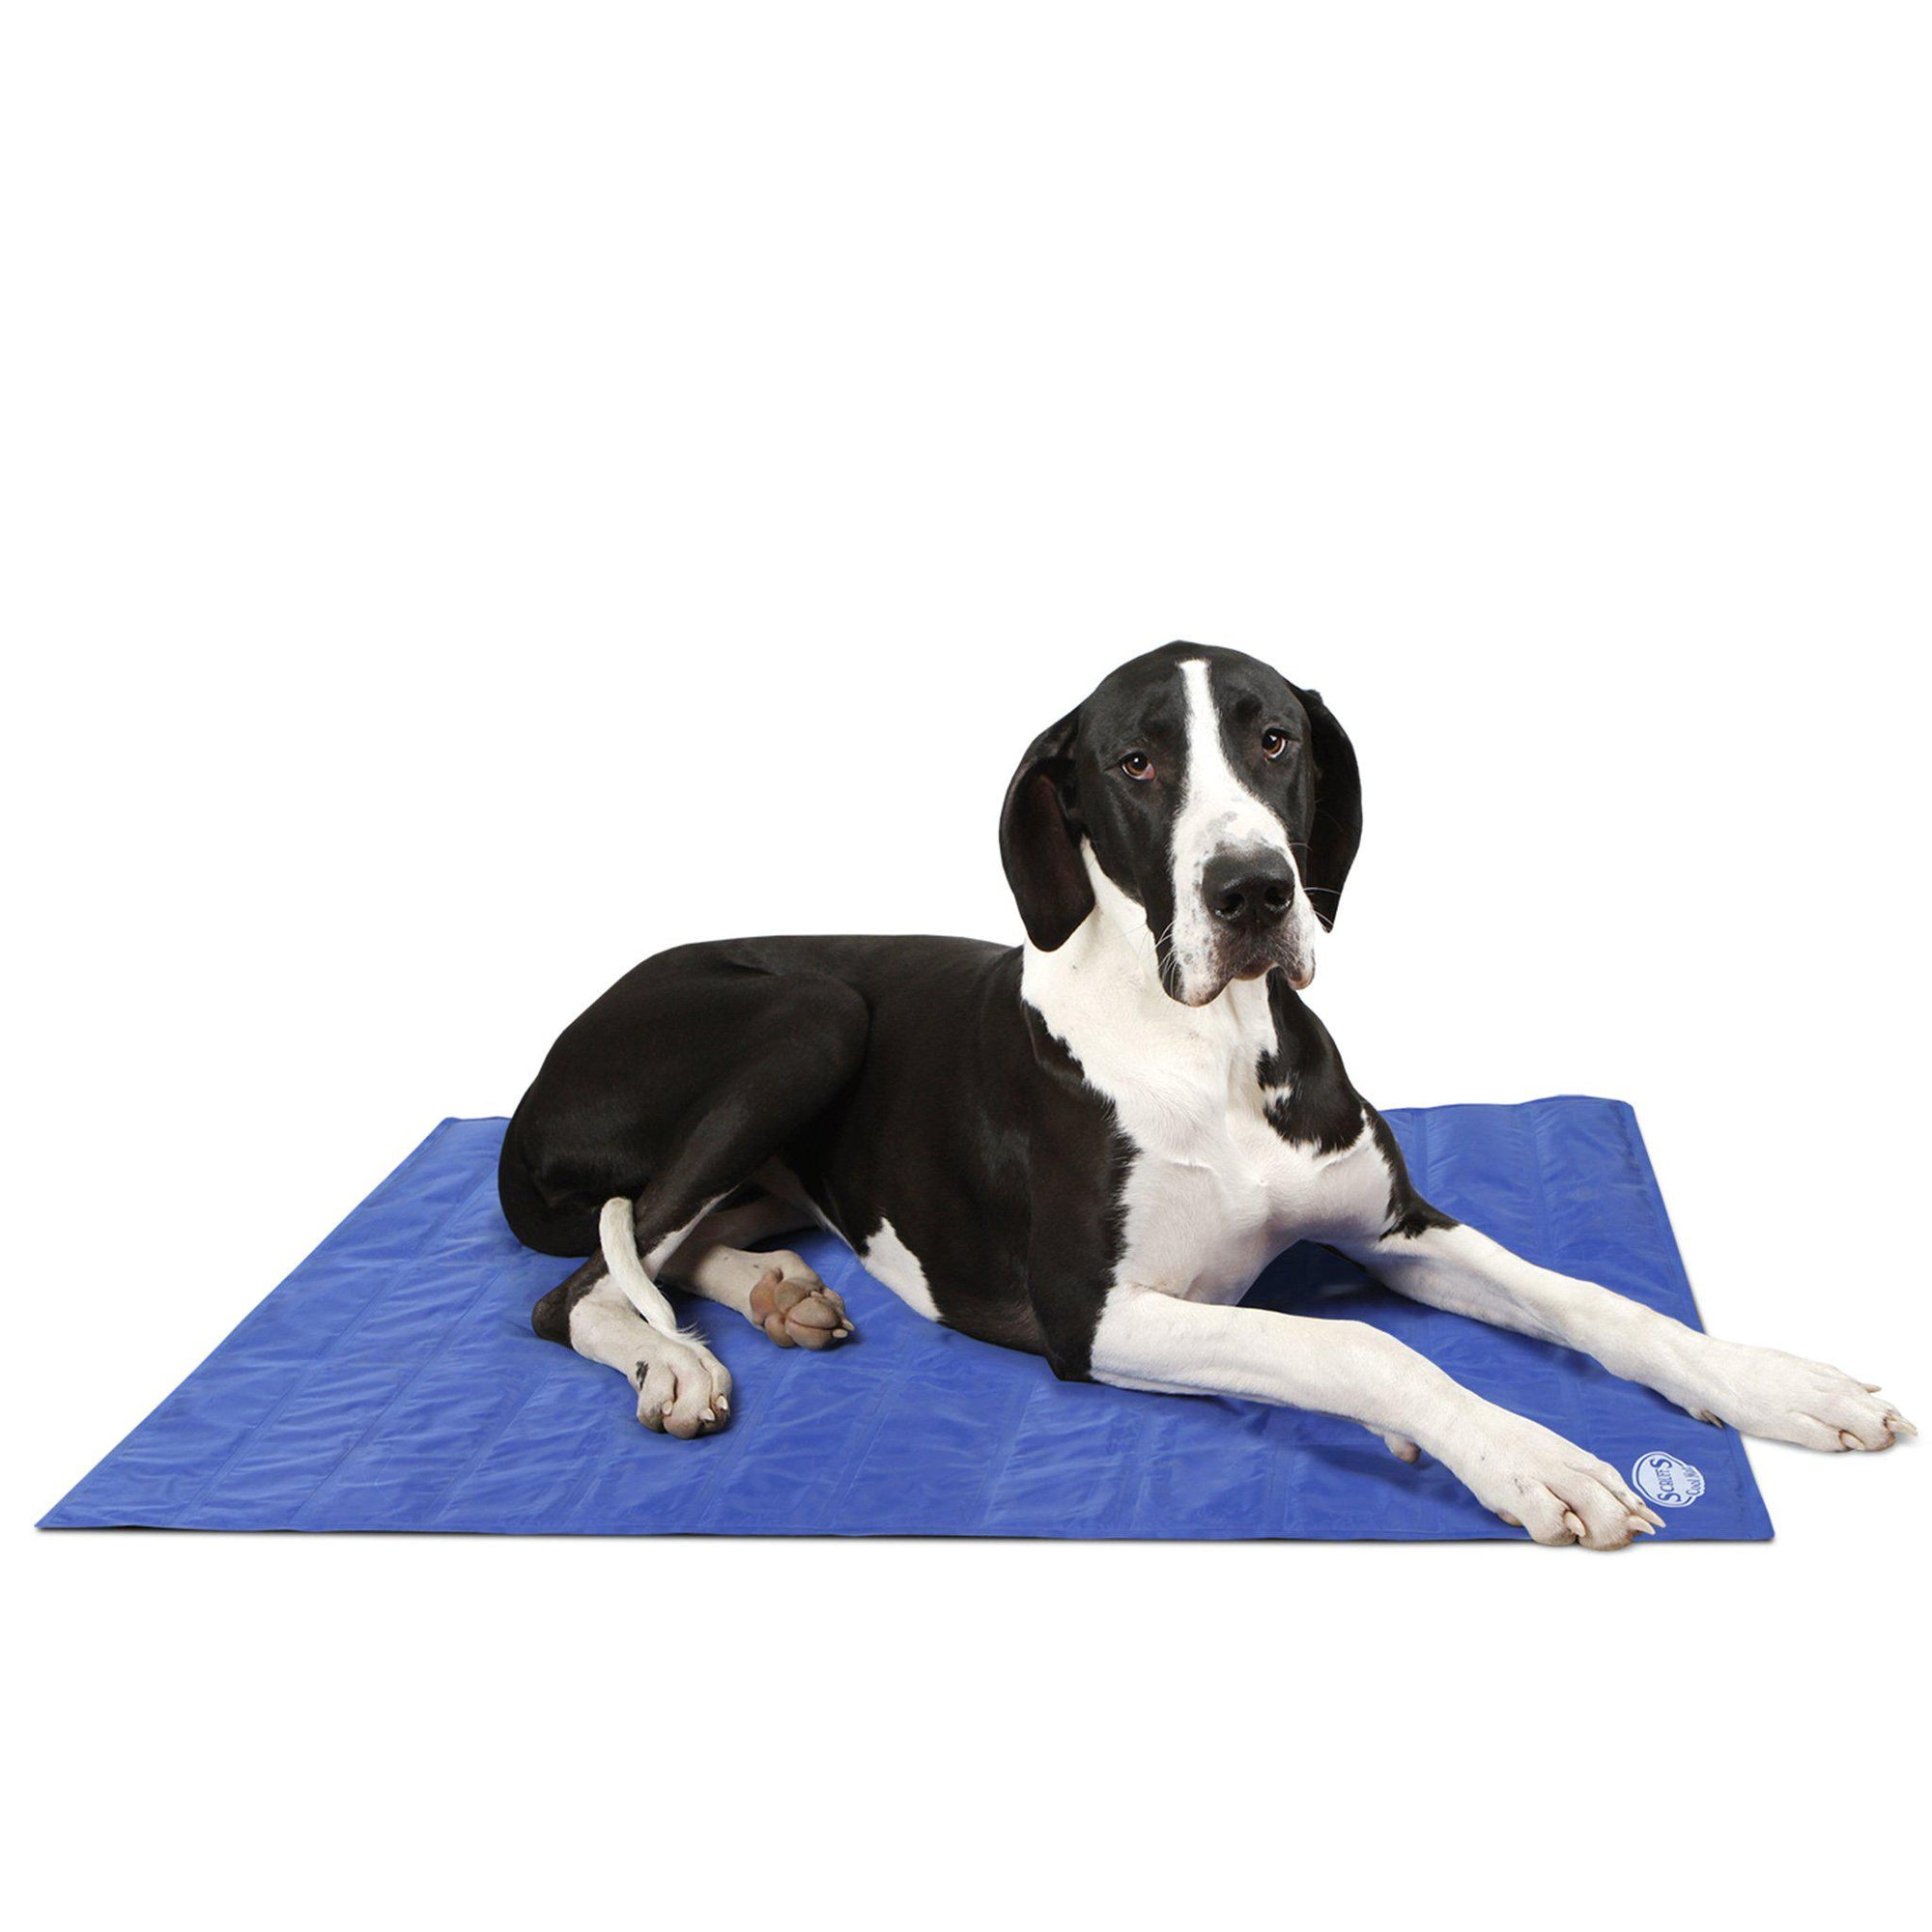 Cooling Mat - ComfyPet Products